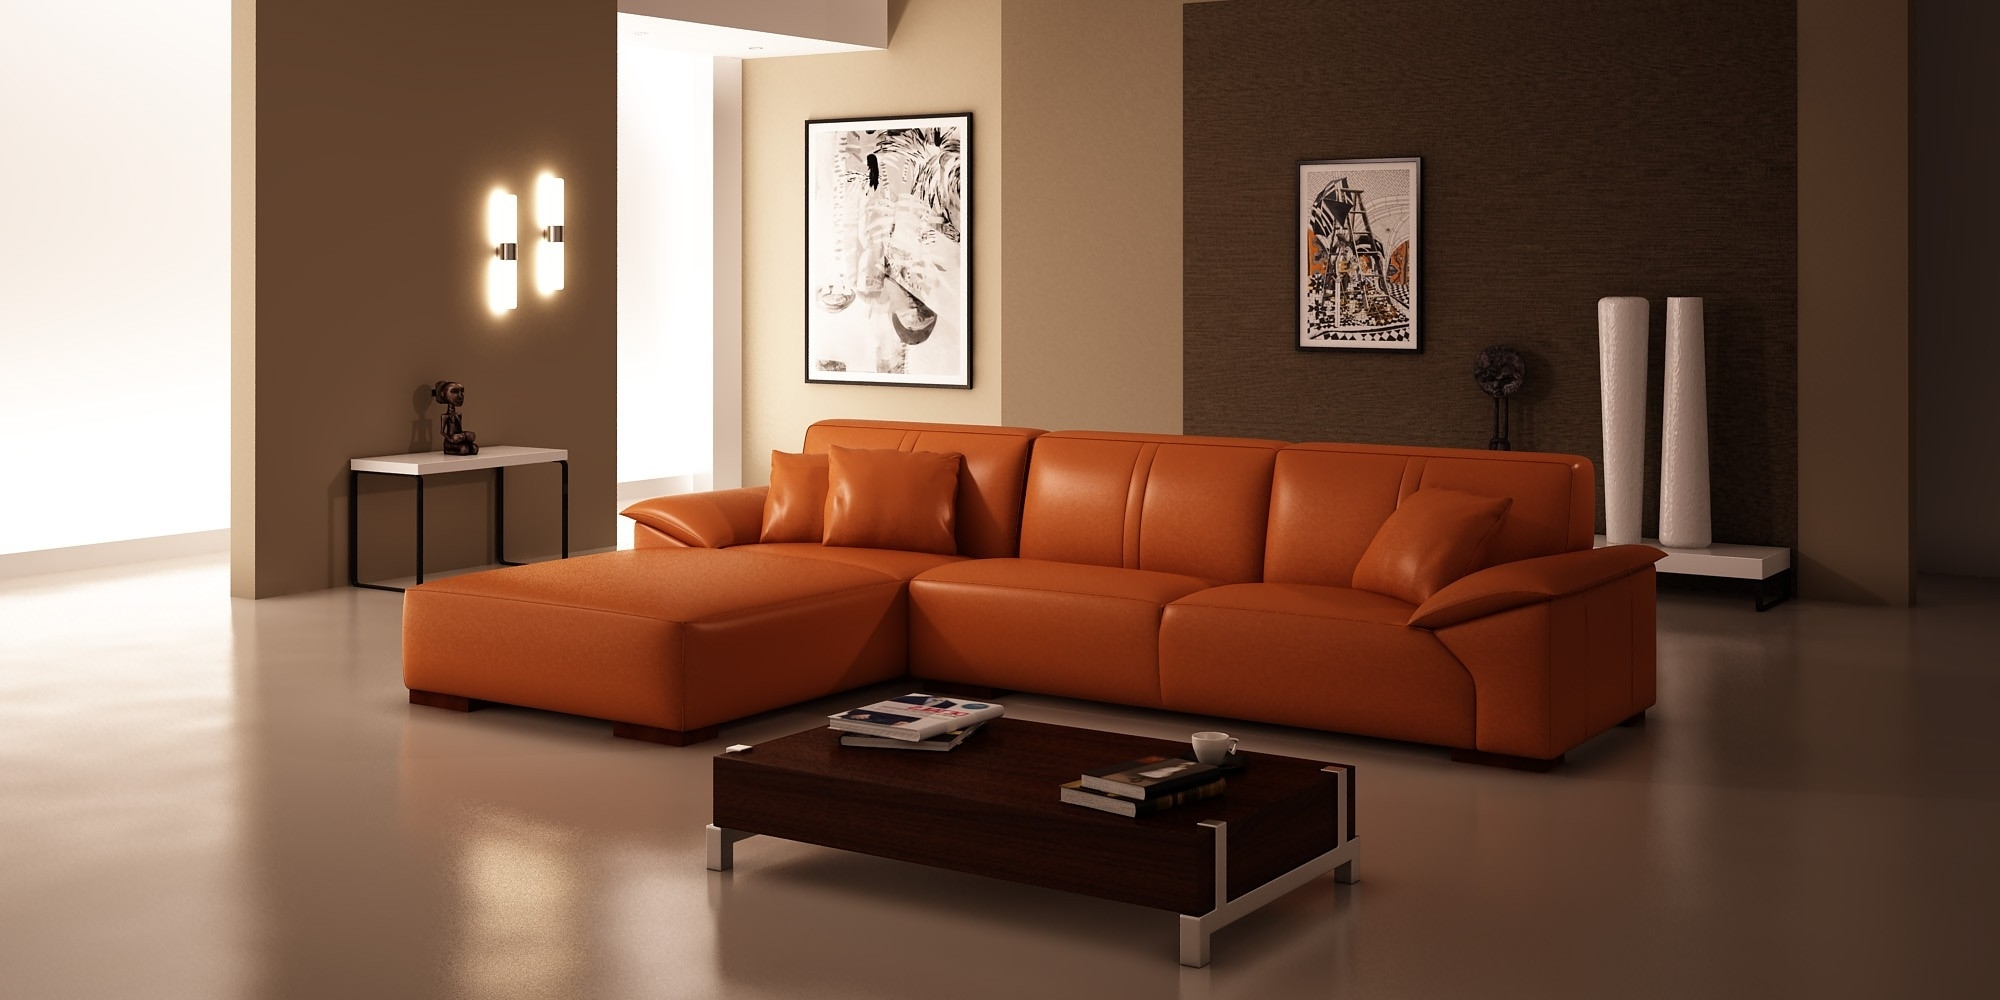 Fashionable Furniture: Impressive Living Room Decor Using Chic Sectional Pertaining To Sectional Sofas At Amazon (View 5 of 20)